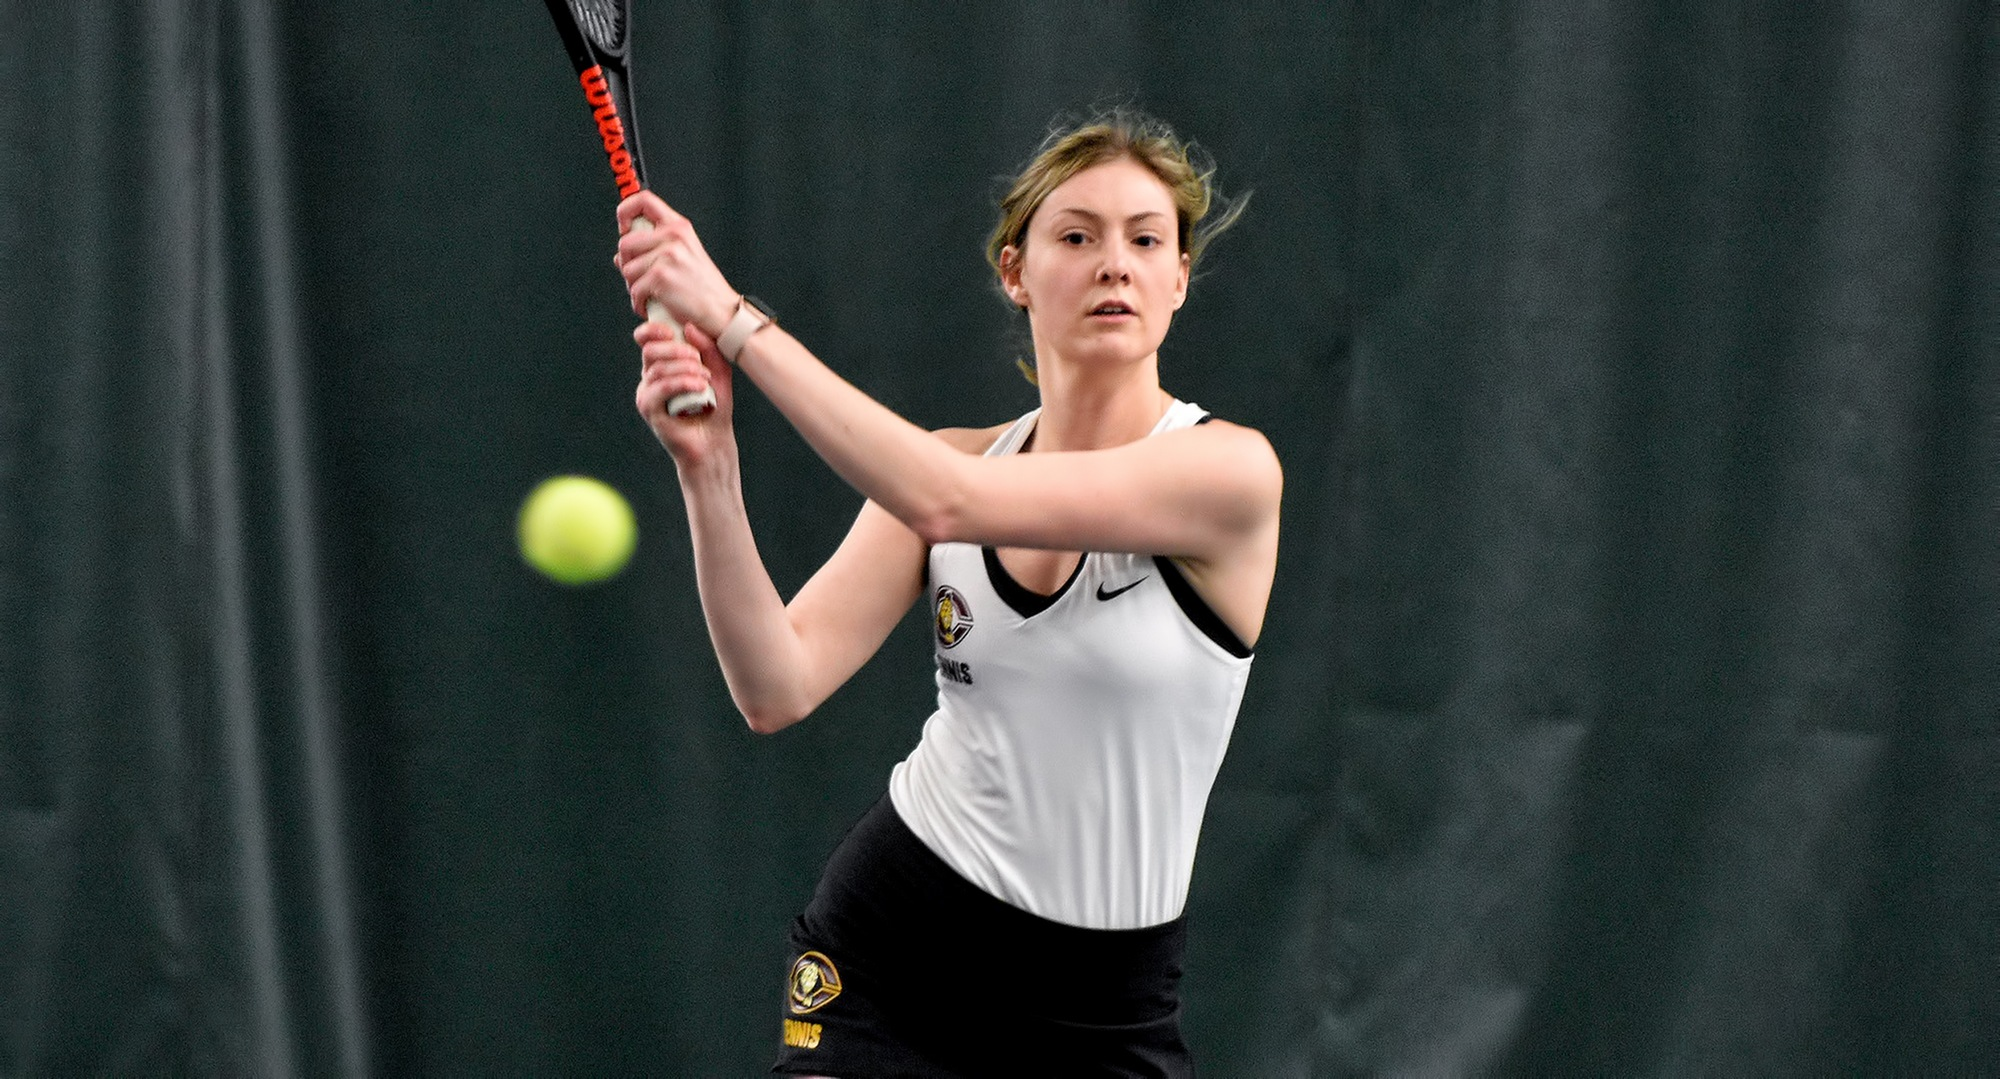 Junior Jenna Forknell eyes her backhand return during her match at No.2 singles in the Cobbers' home opener against St. Catherine.